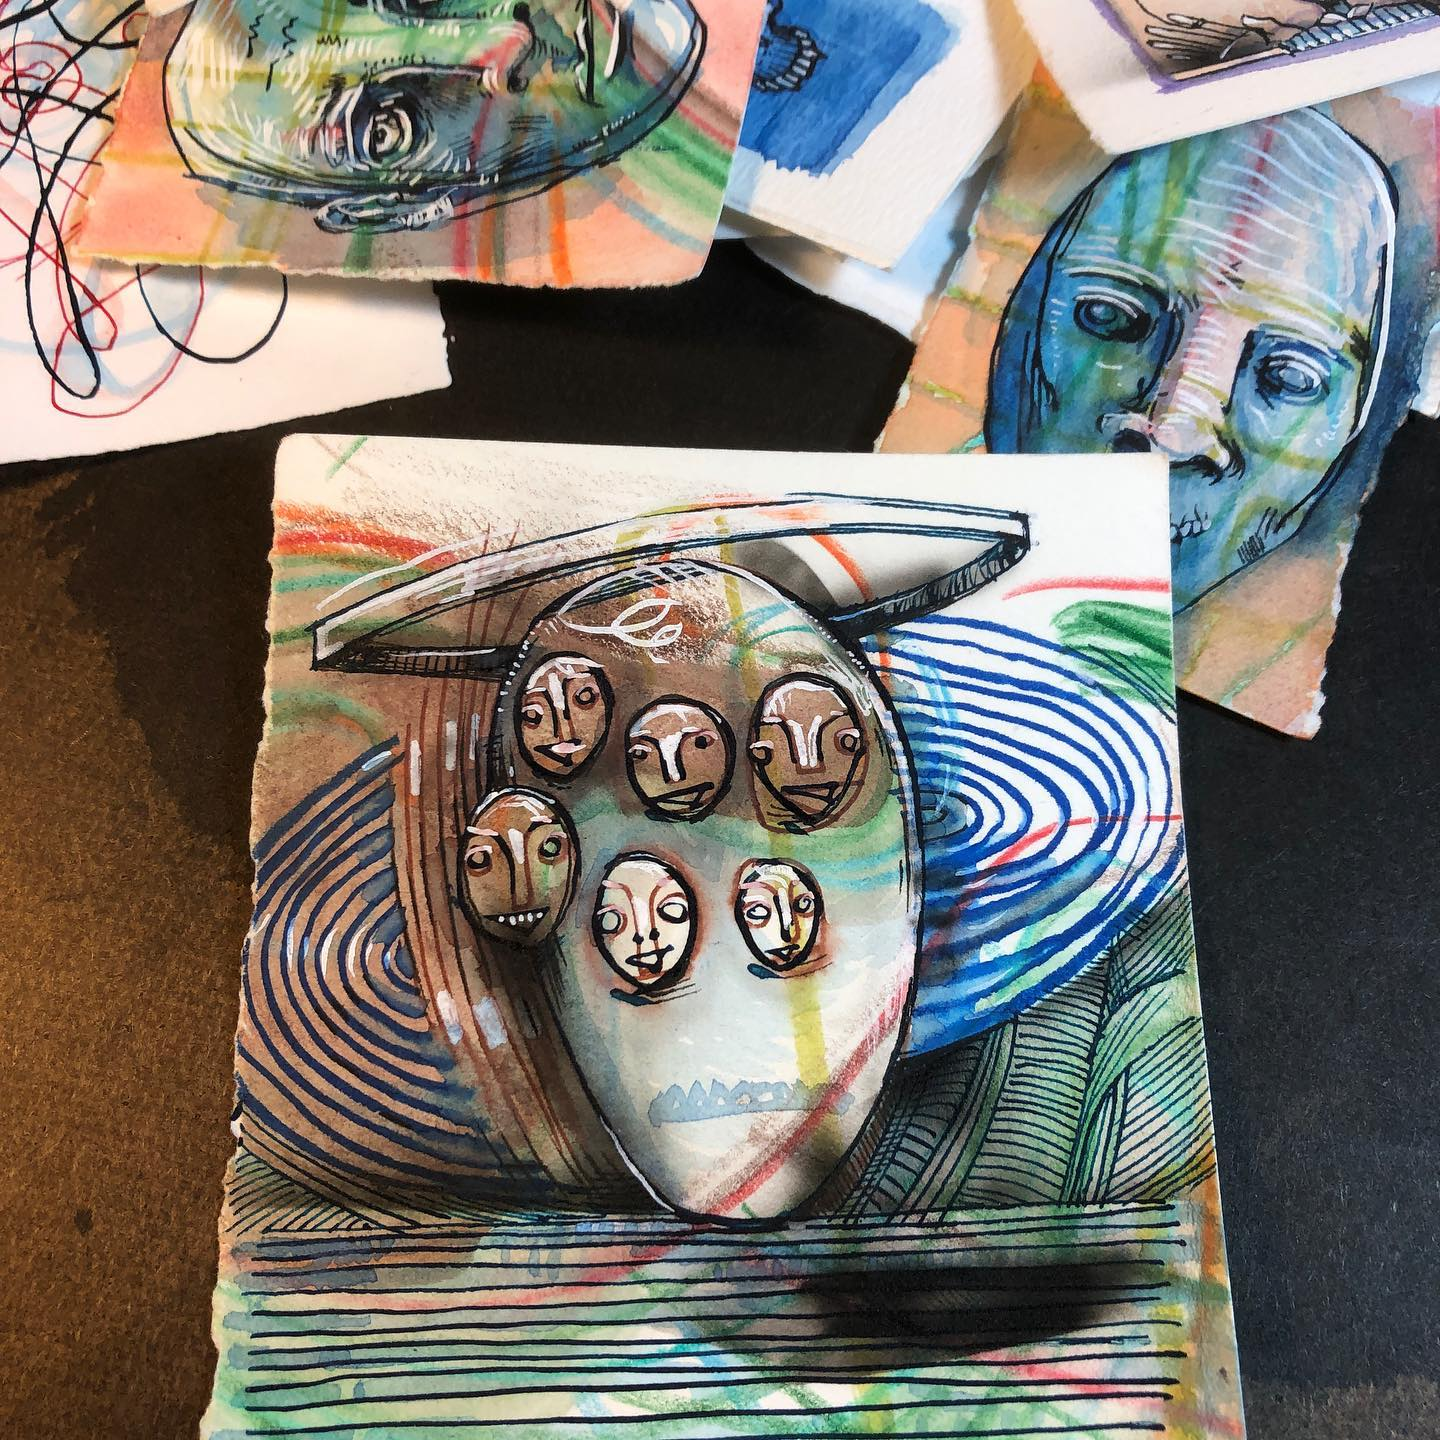 Several Faces - ink, watercolor, colored pencil, airbrush drawings